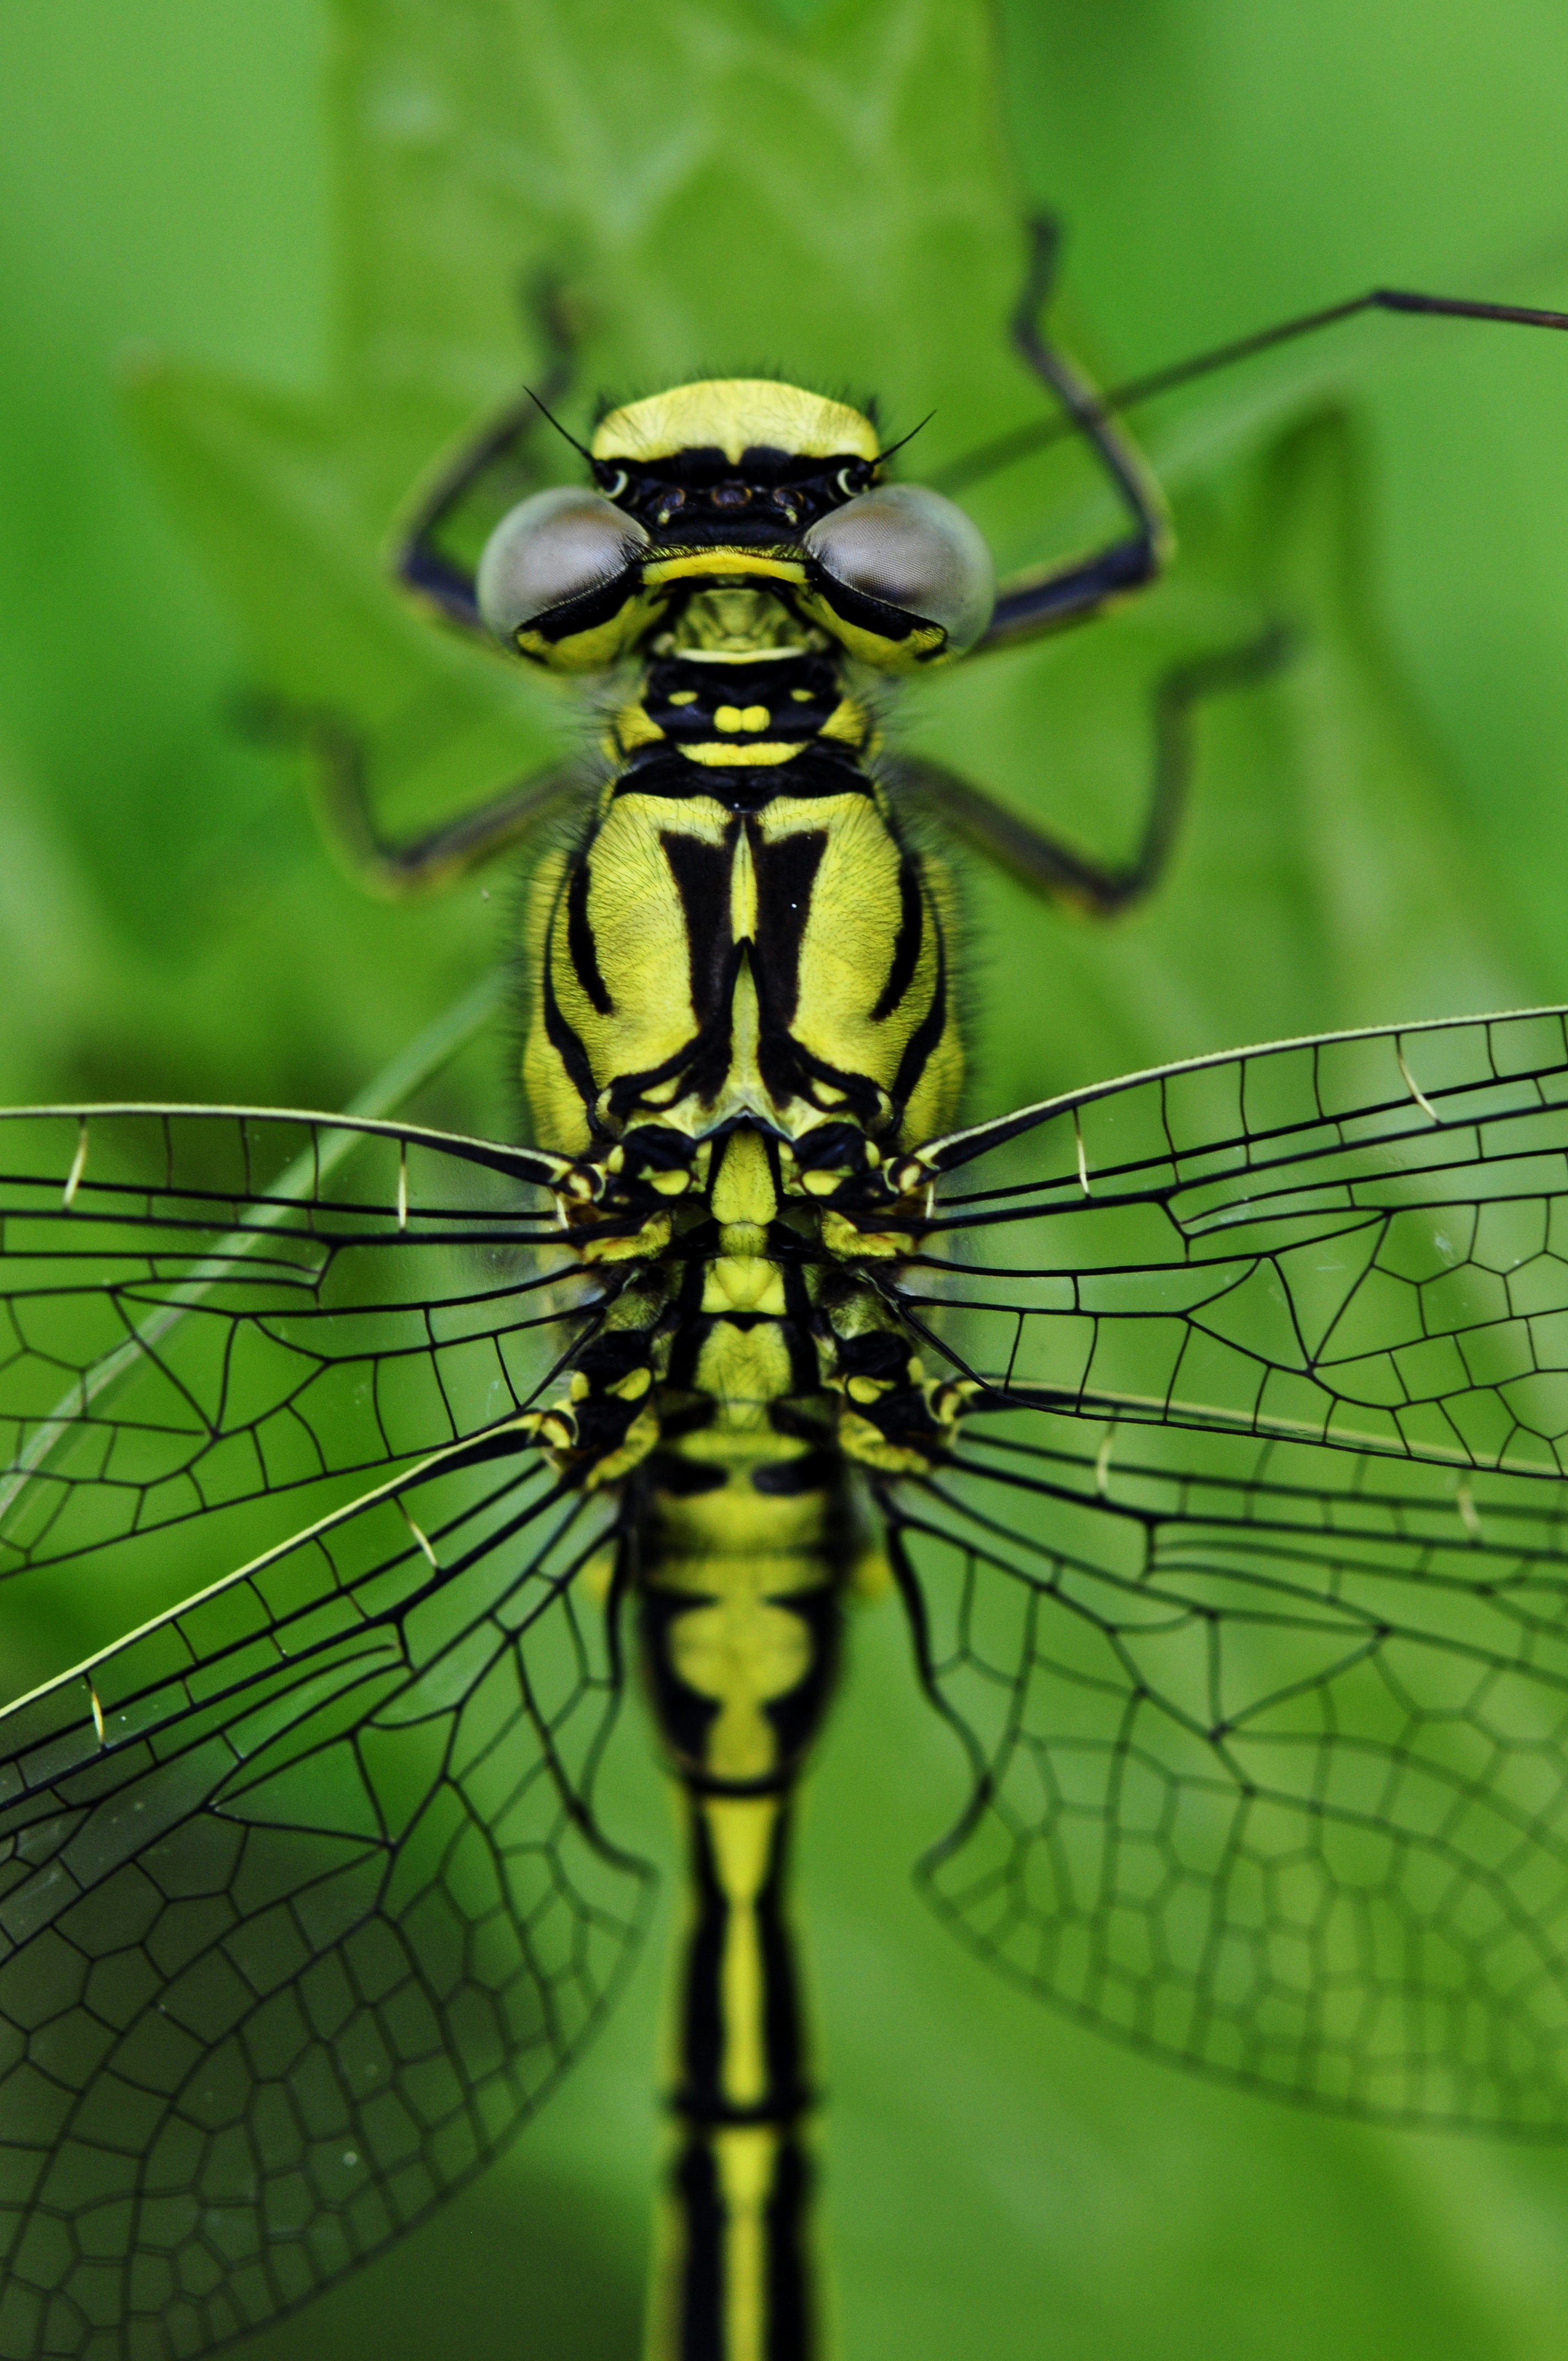 How To Change Lock Screen Wallpaper Iphone Free Stock Photo Of Close Dragonfly Wing Insect